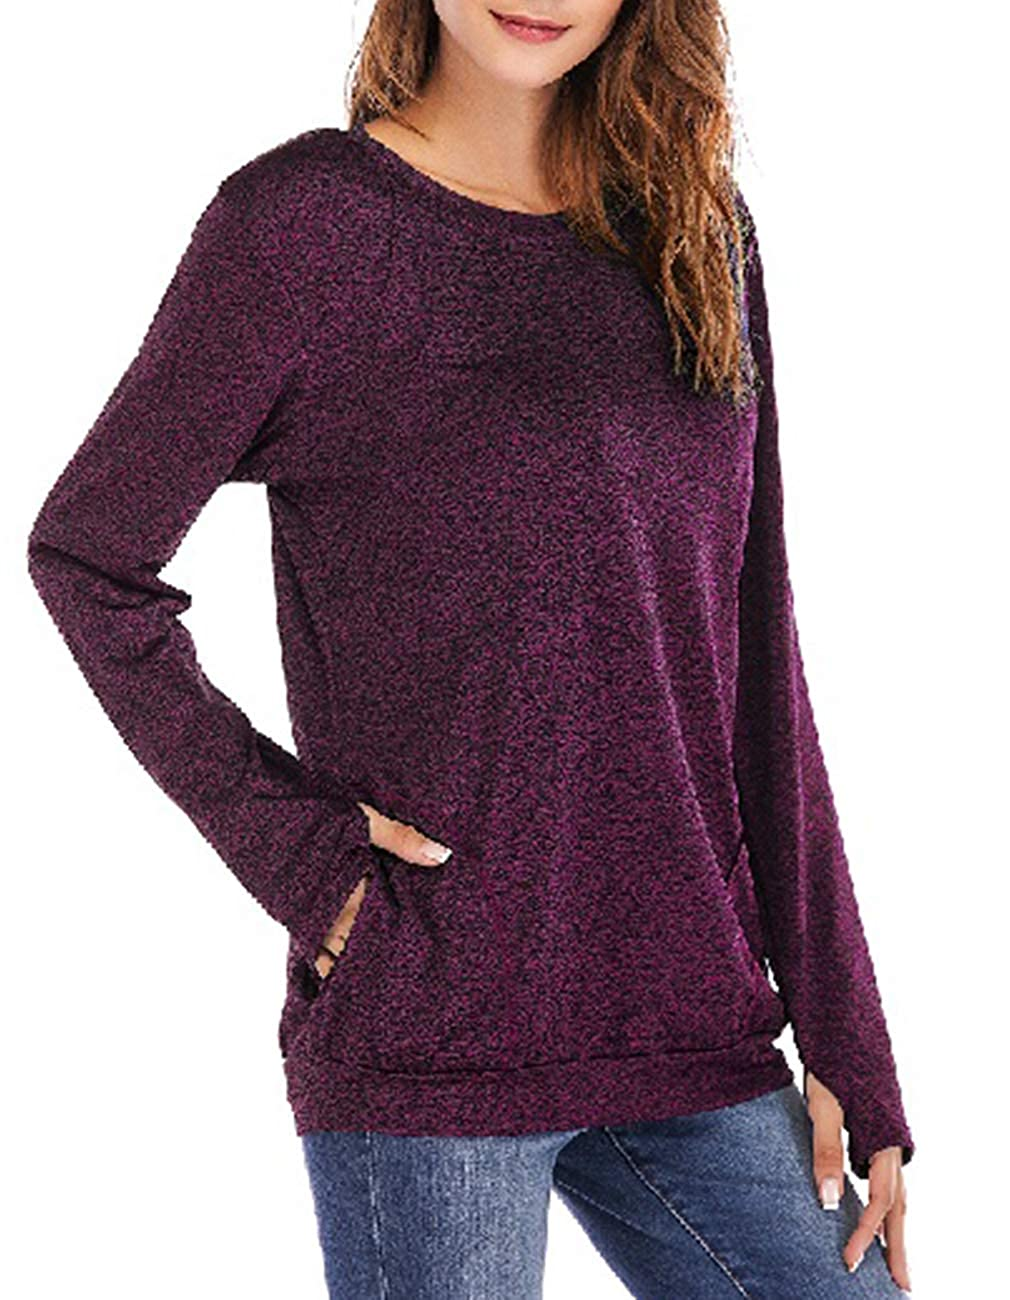 pink Red Defal Womens Long Sleeve Round Neck QuickDry Top TShirts Loose Gym Sports with Thumb Holes Pockets Comfortable Tunic Blouse